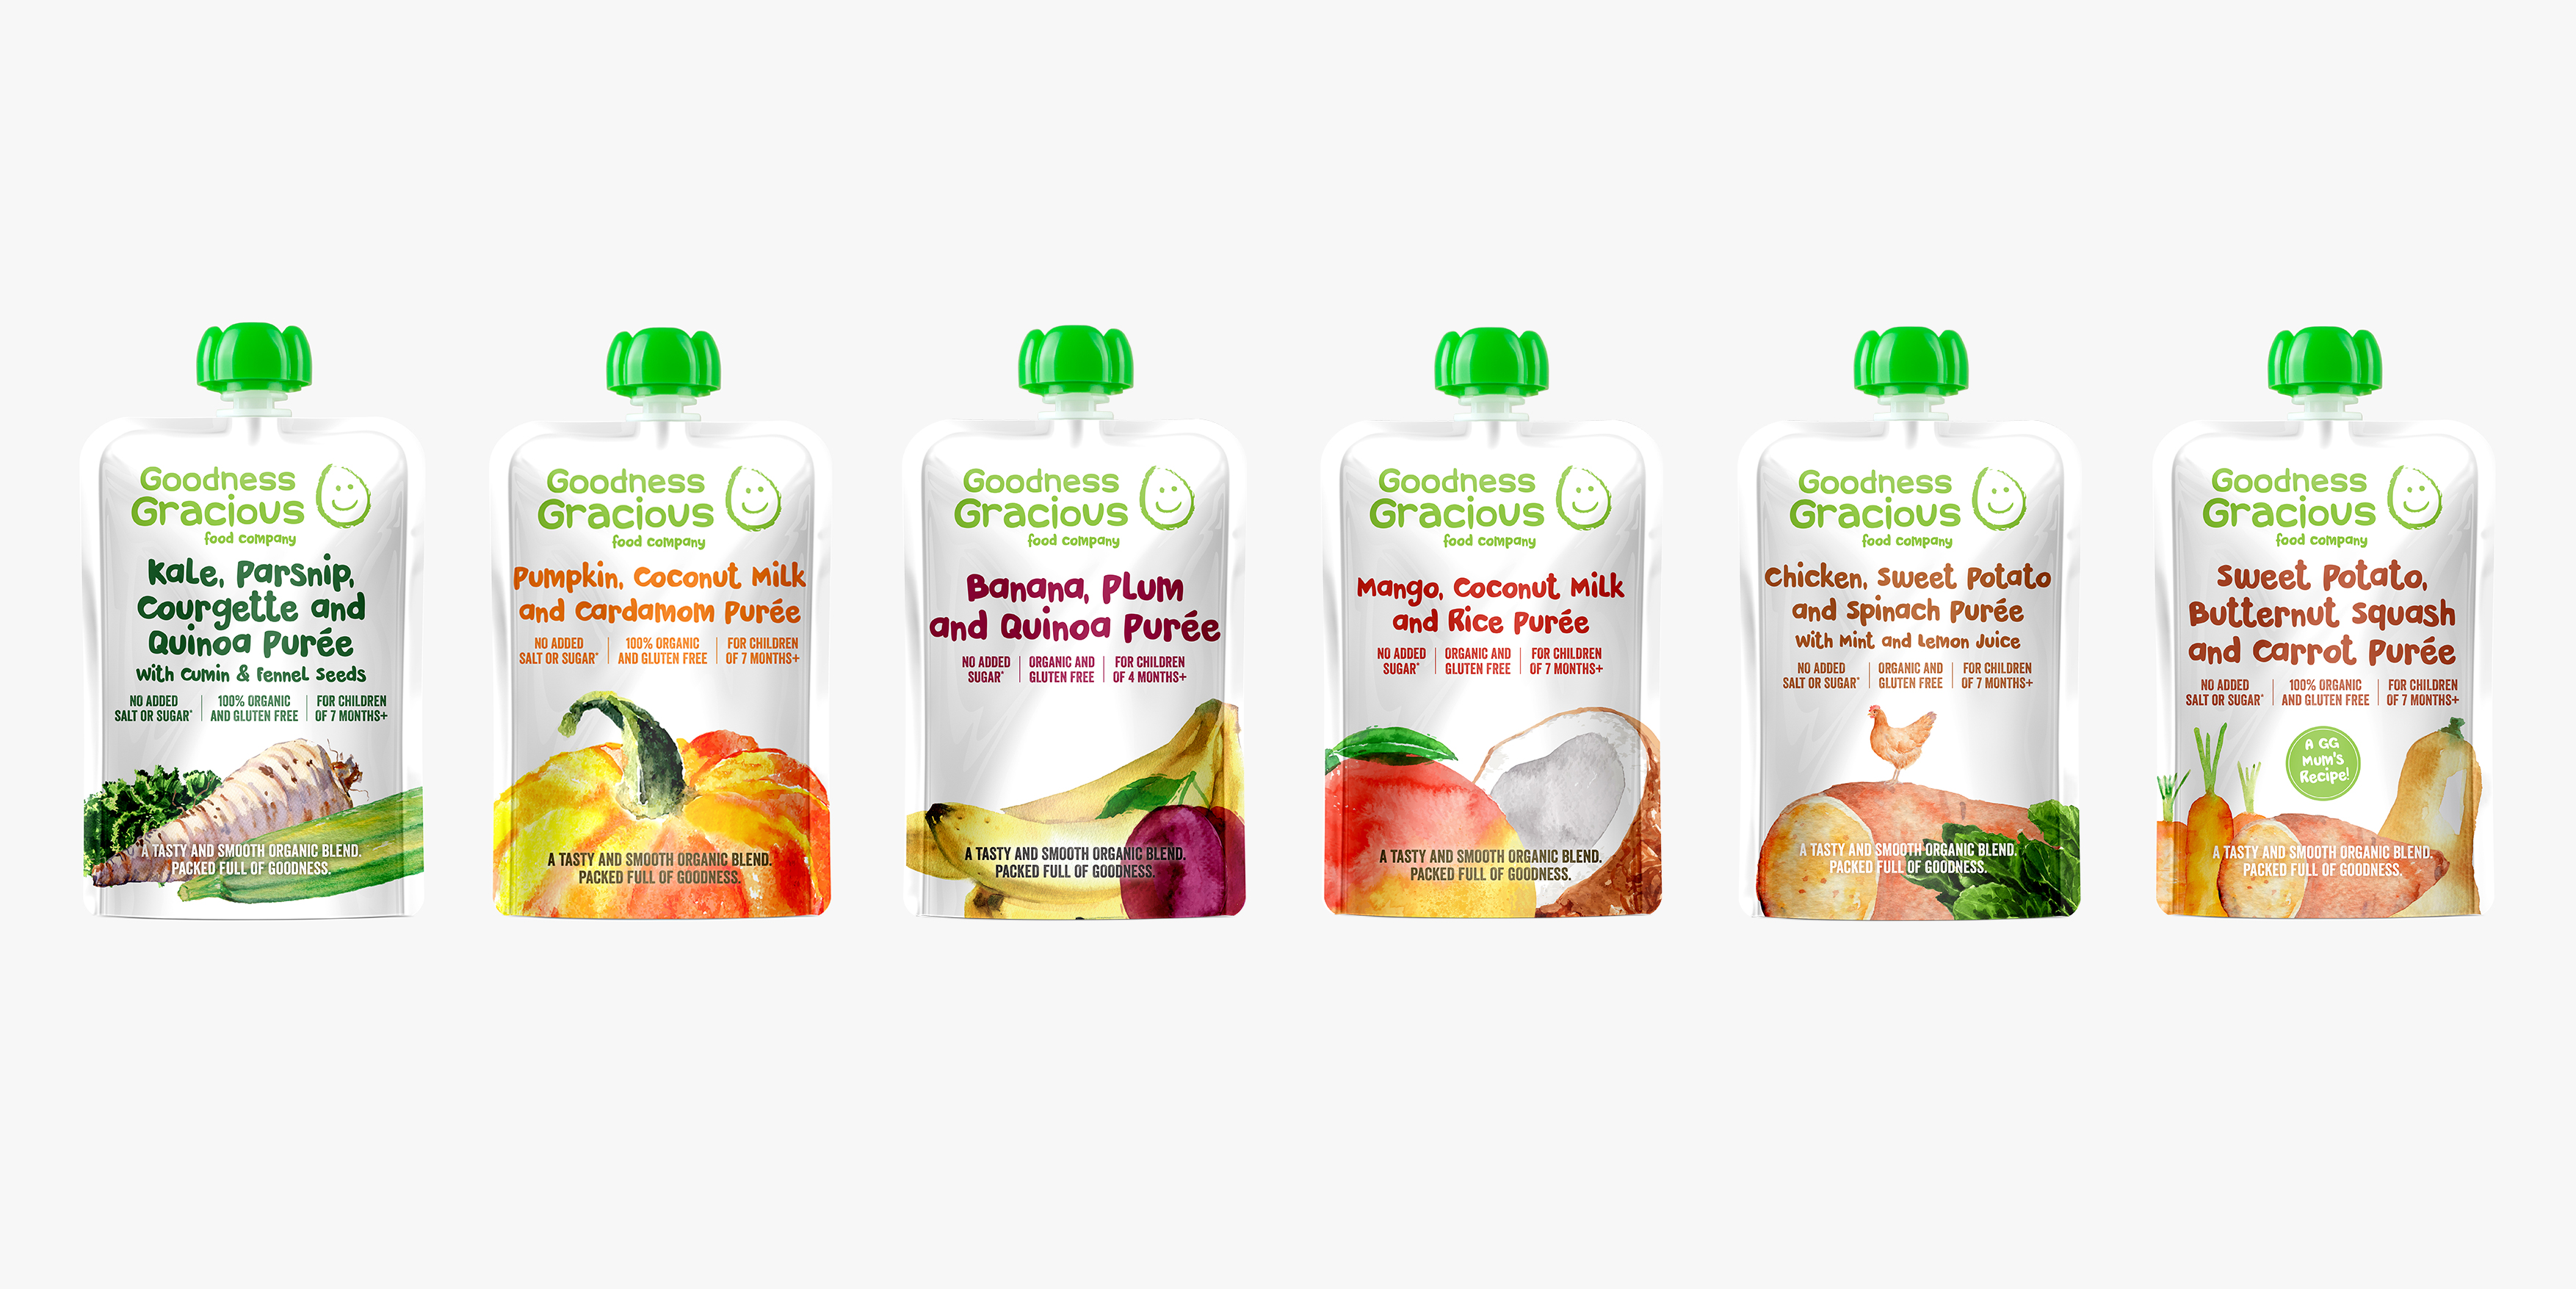 Goodness Gracious Baby Food Branding and Packaging Range by Toast Food